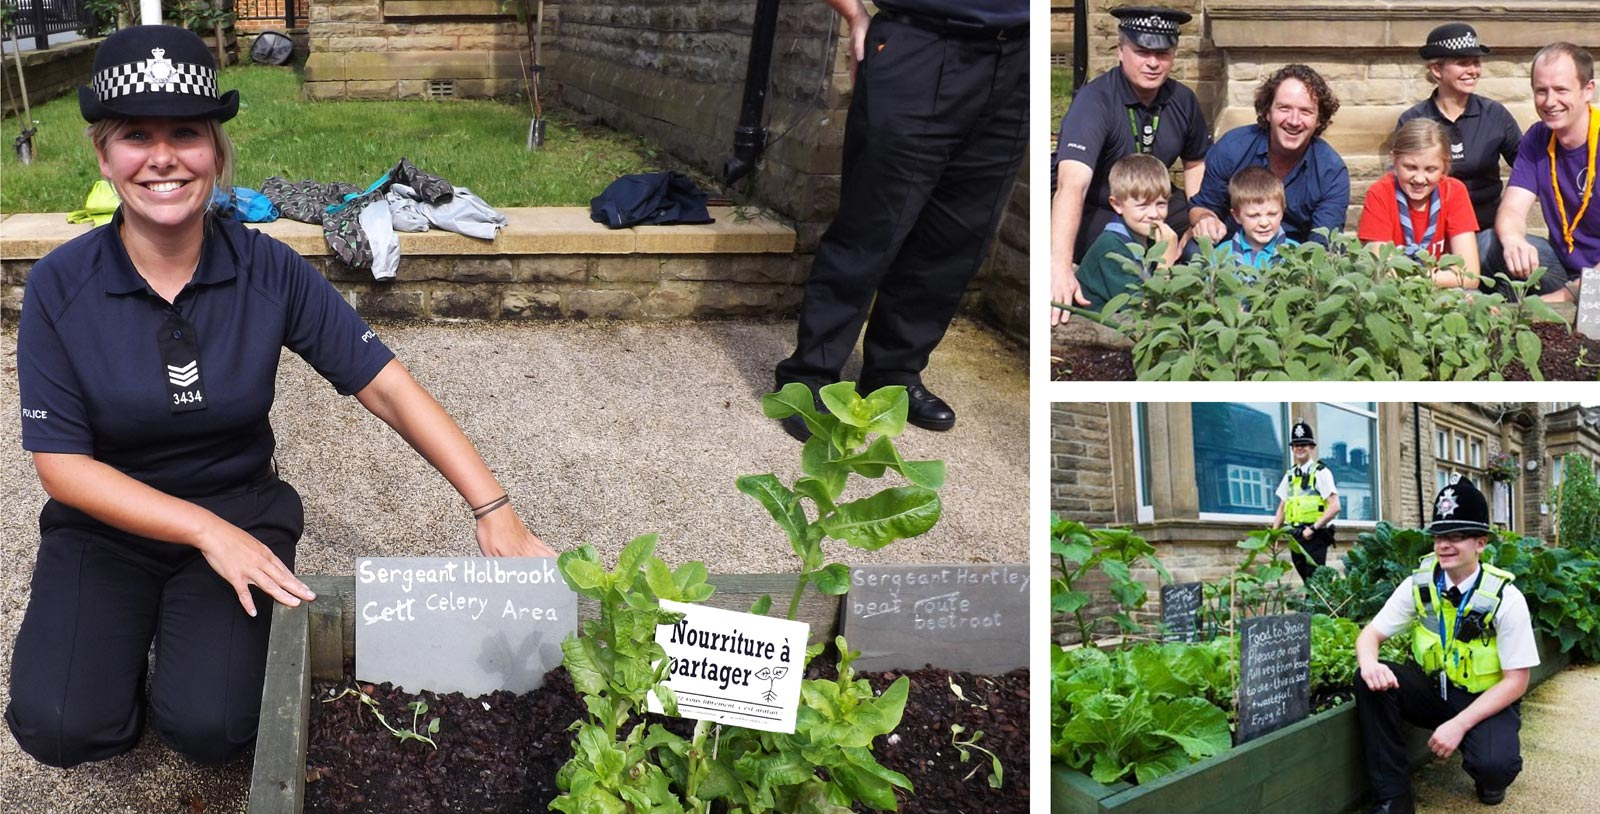 c598_incredible_edible_todmorden_police_agriculture_urbaine_autosuffisance_alimentaire_incroyables_comestibles_w1600